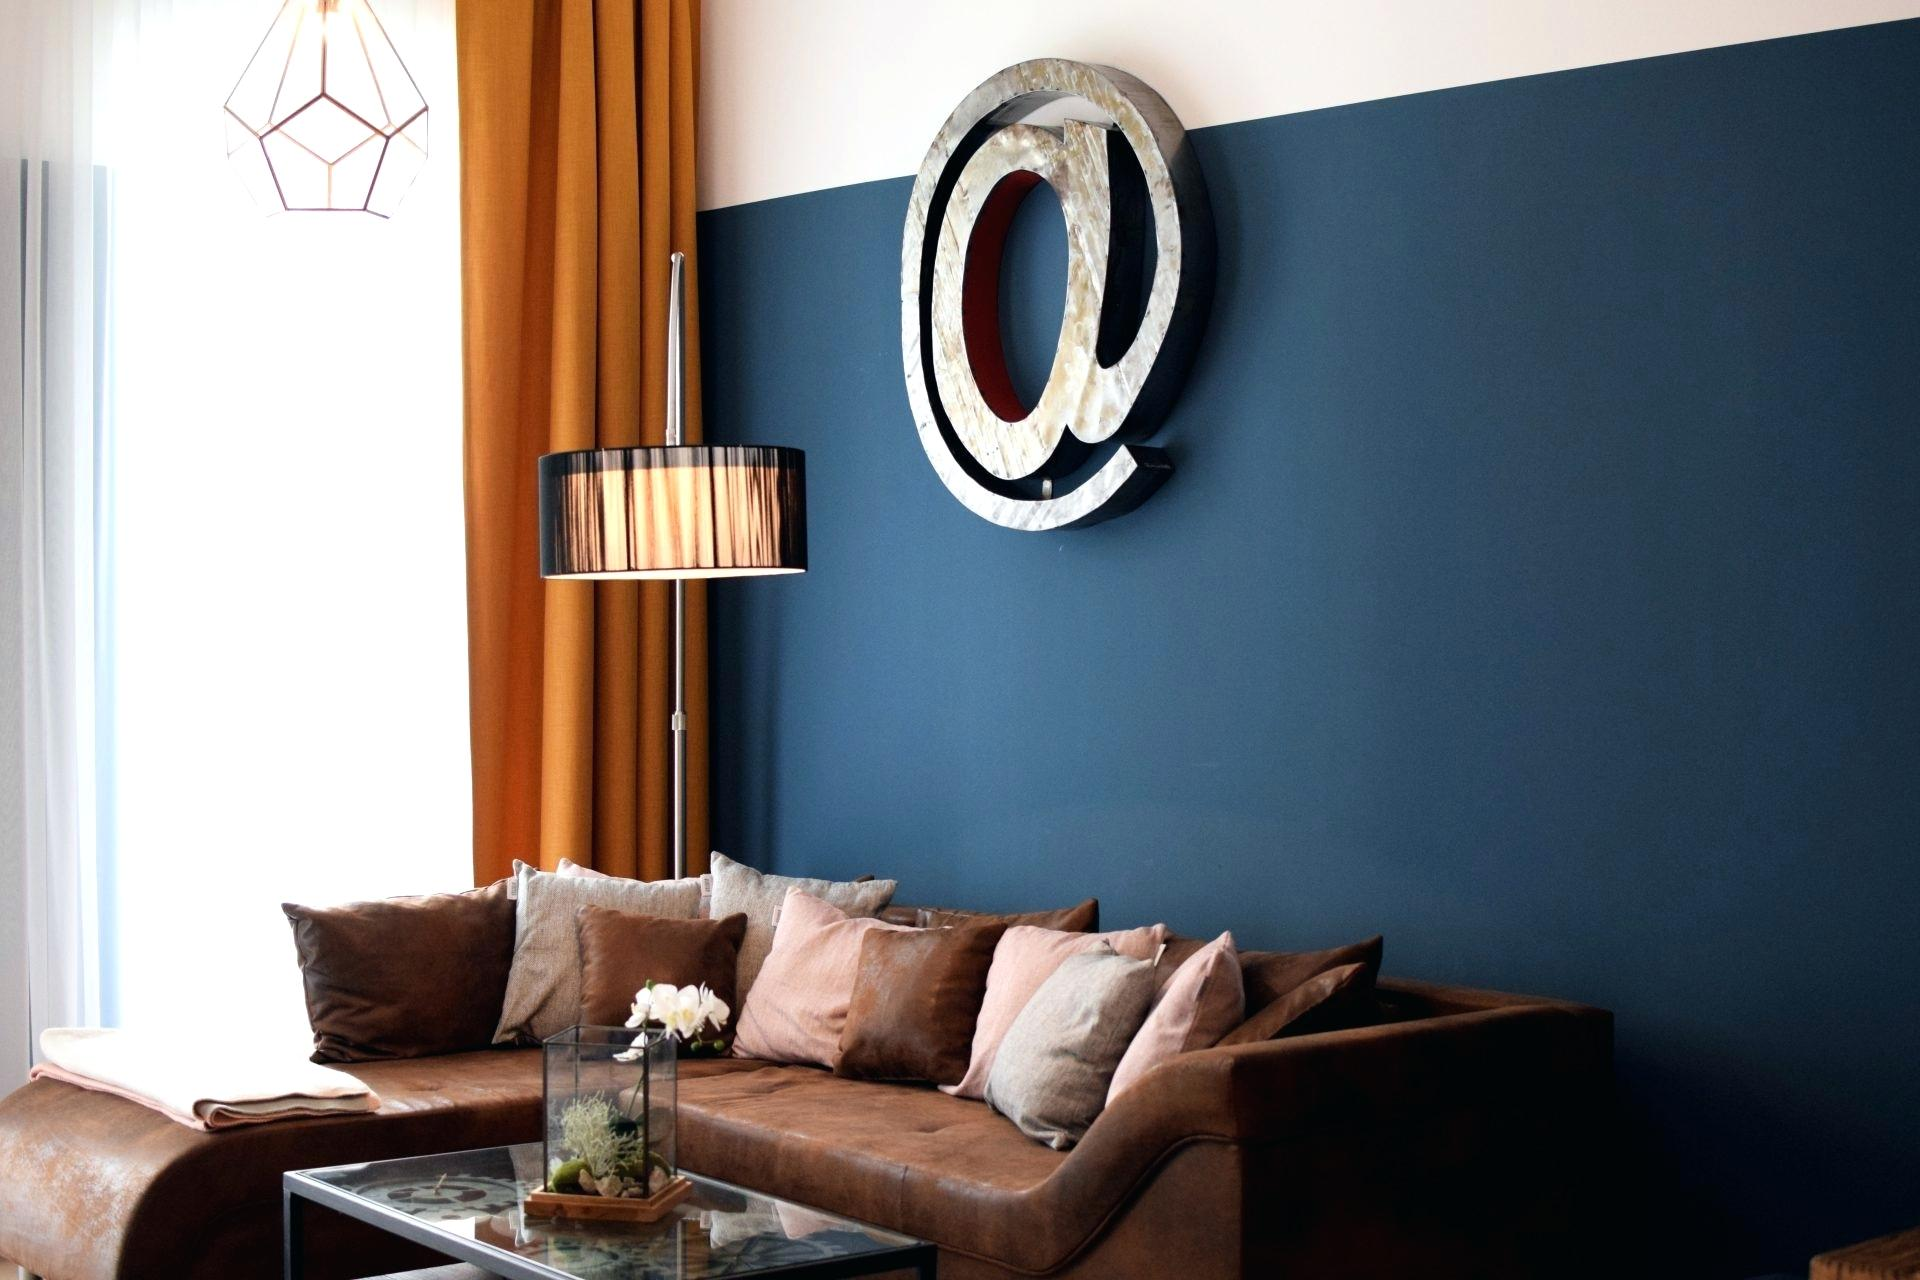 Trendy living room model in blue-green and brown brown